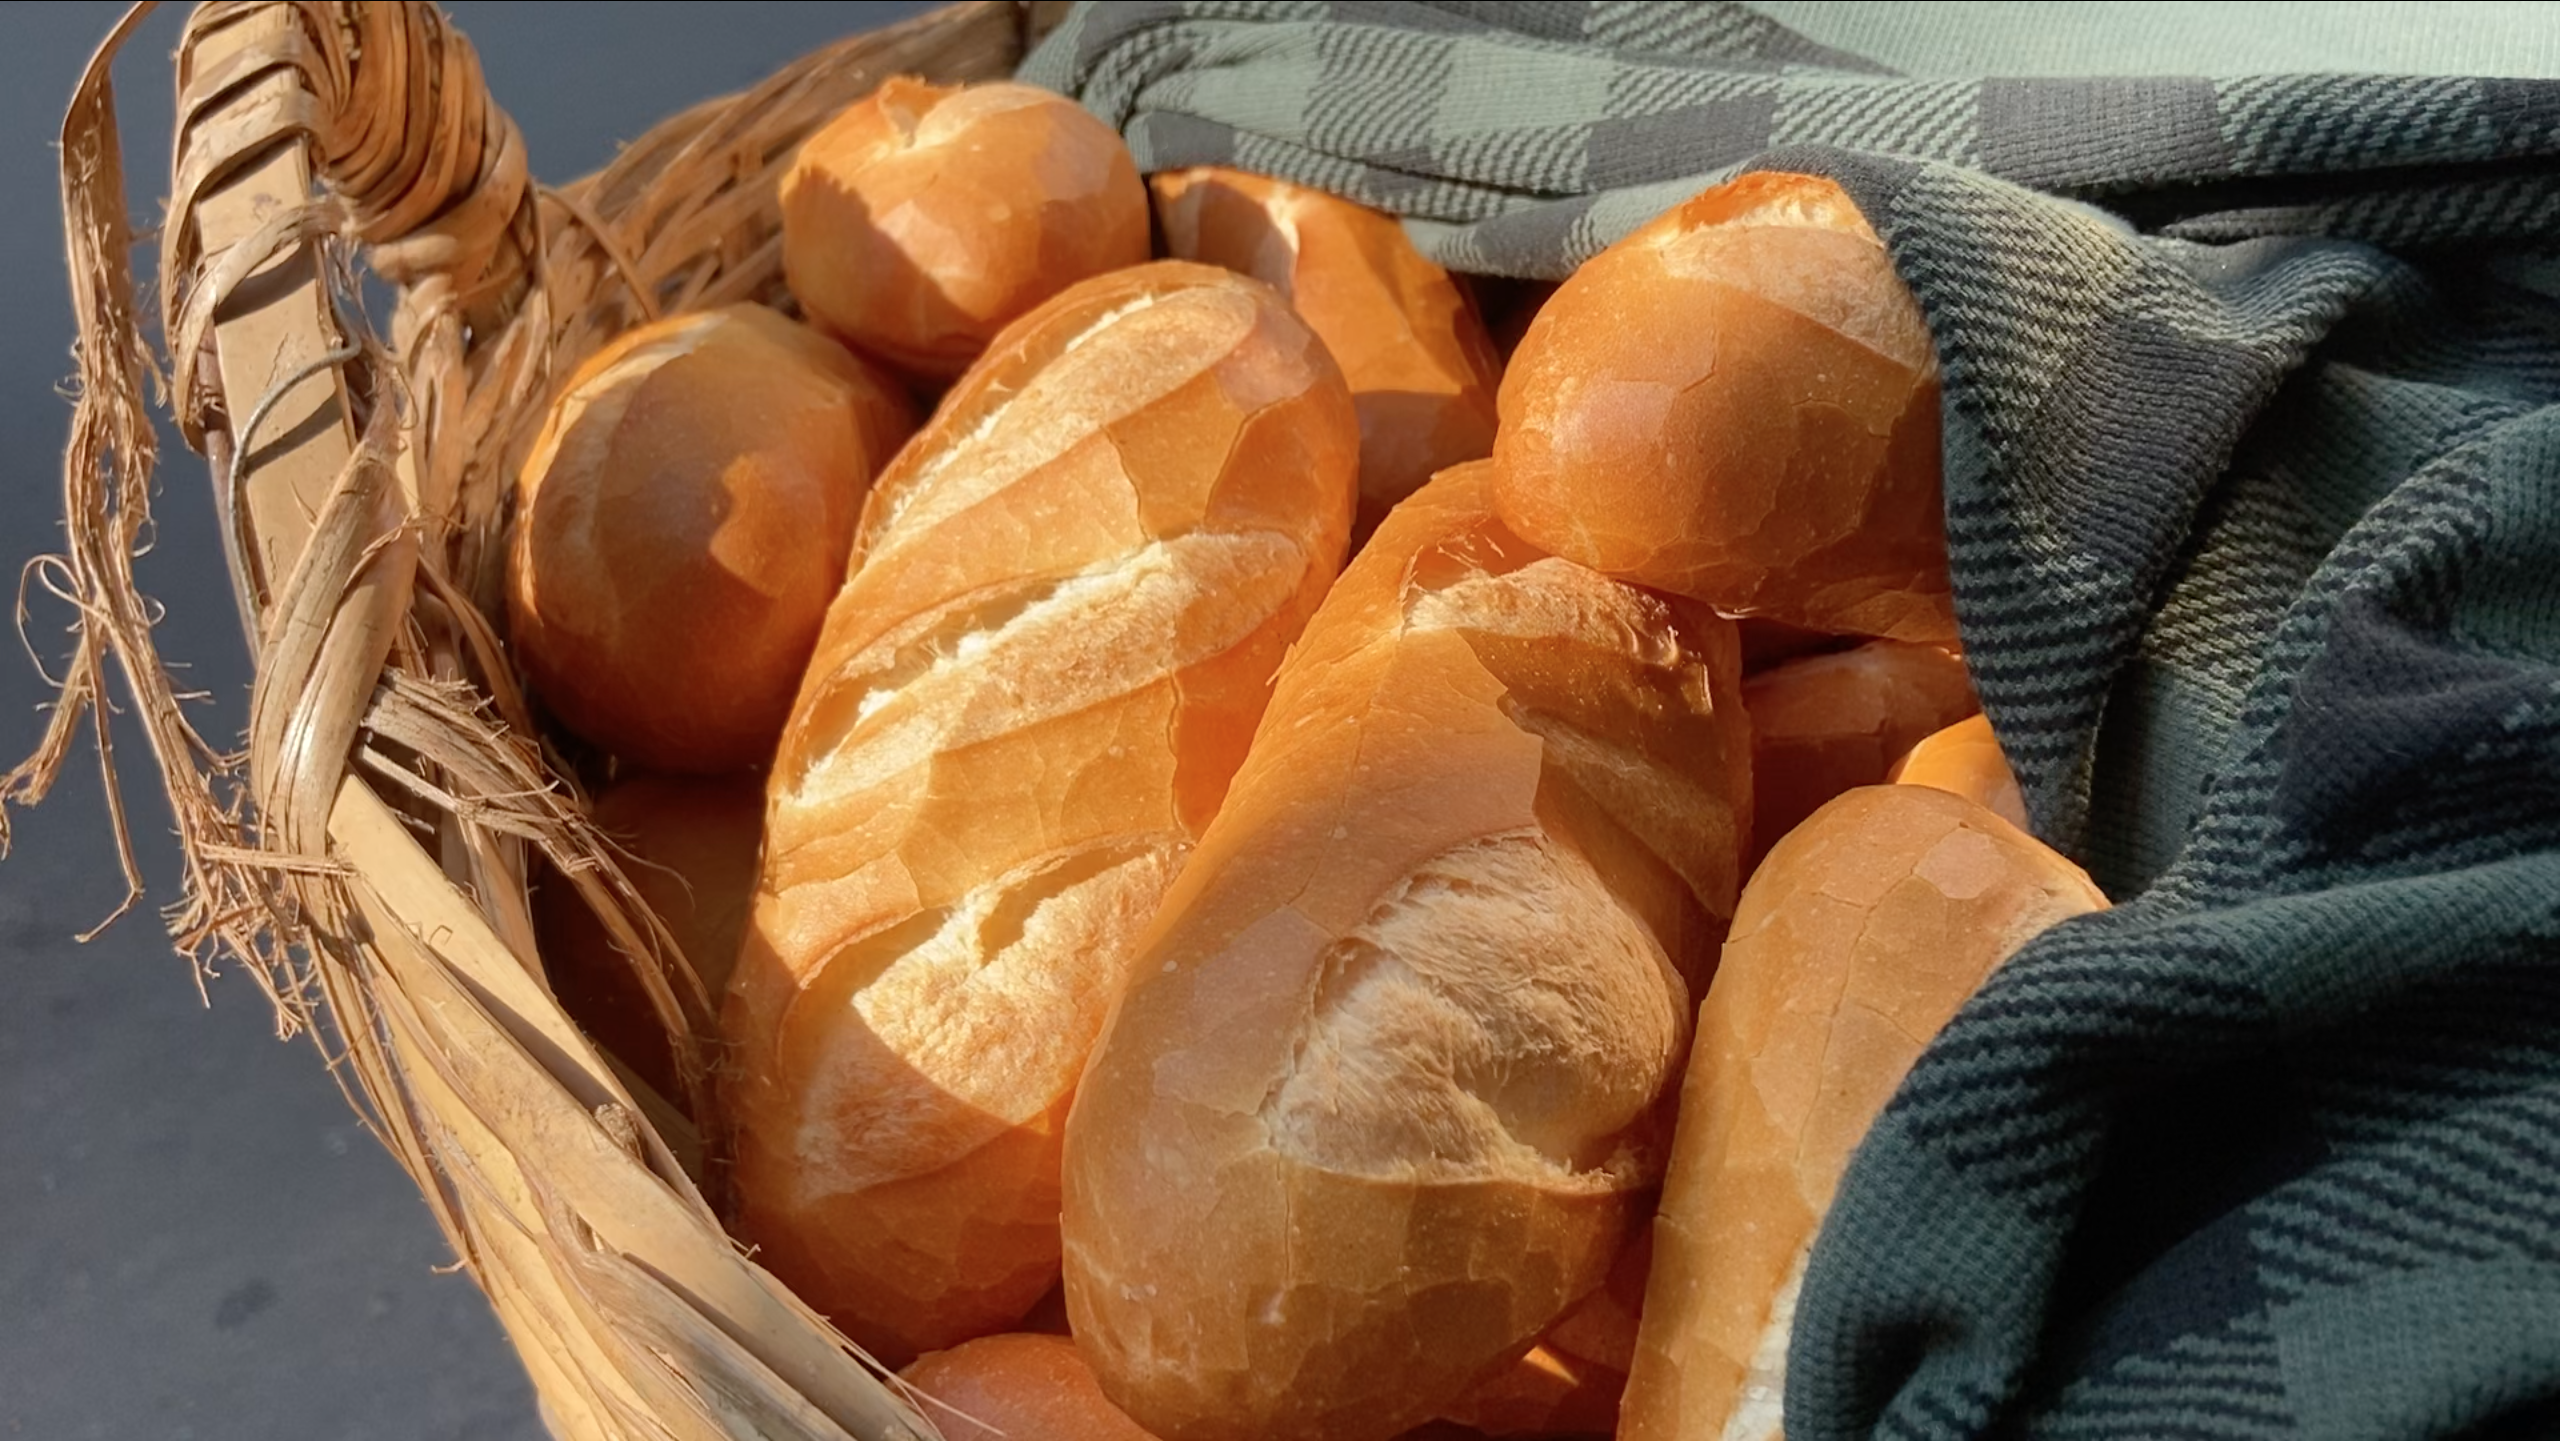 Fresh bread is delivered each morning at Banh Mi Bay Ho on Huynh Khuong Ninh Street, District 1, Ho Chi Minh City. Photo: Linh To / Tuoi Tre